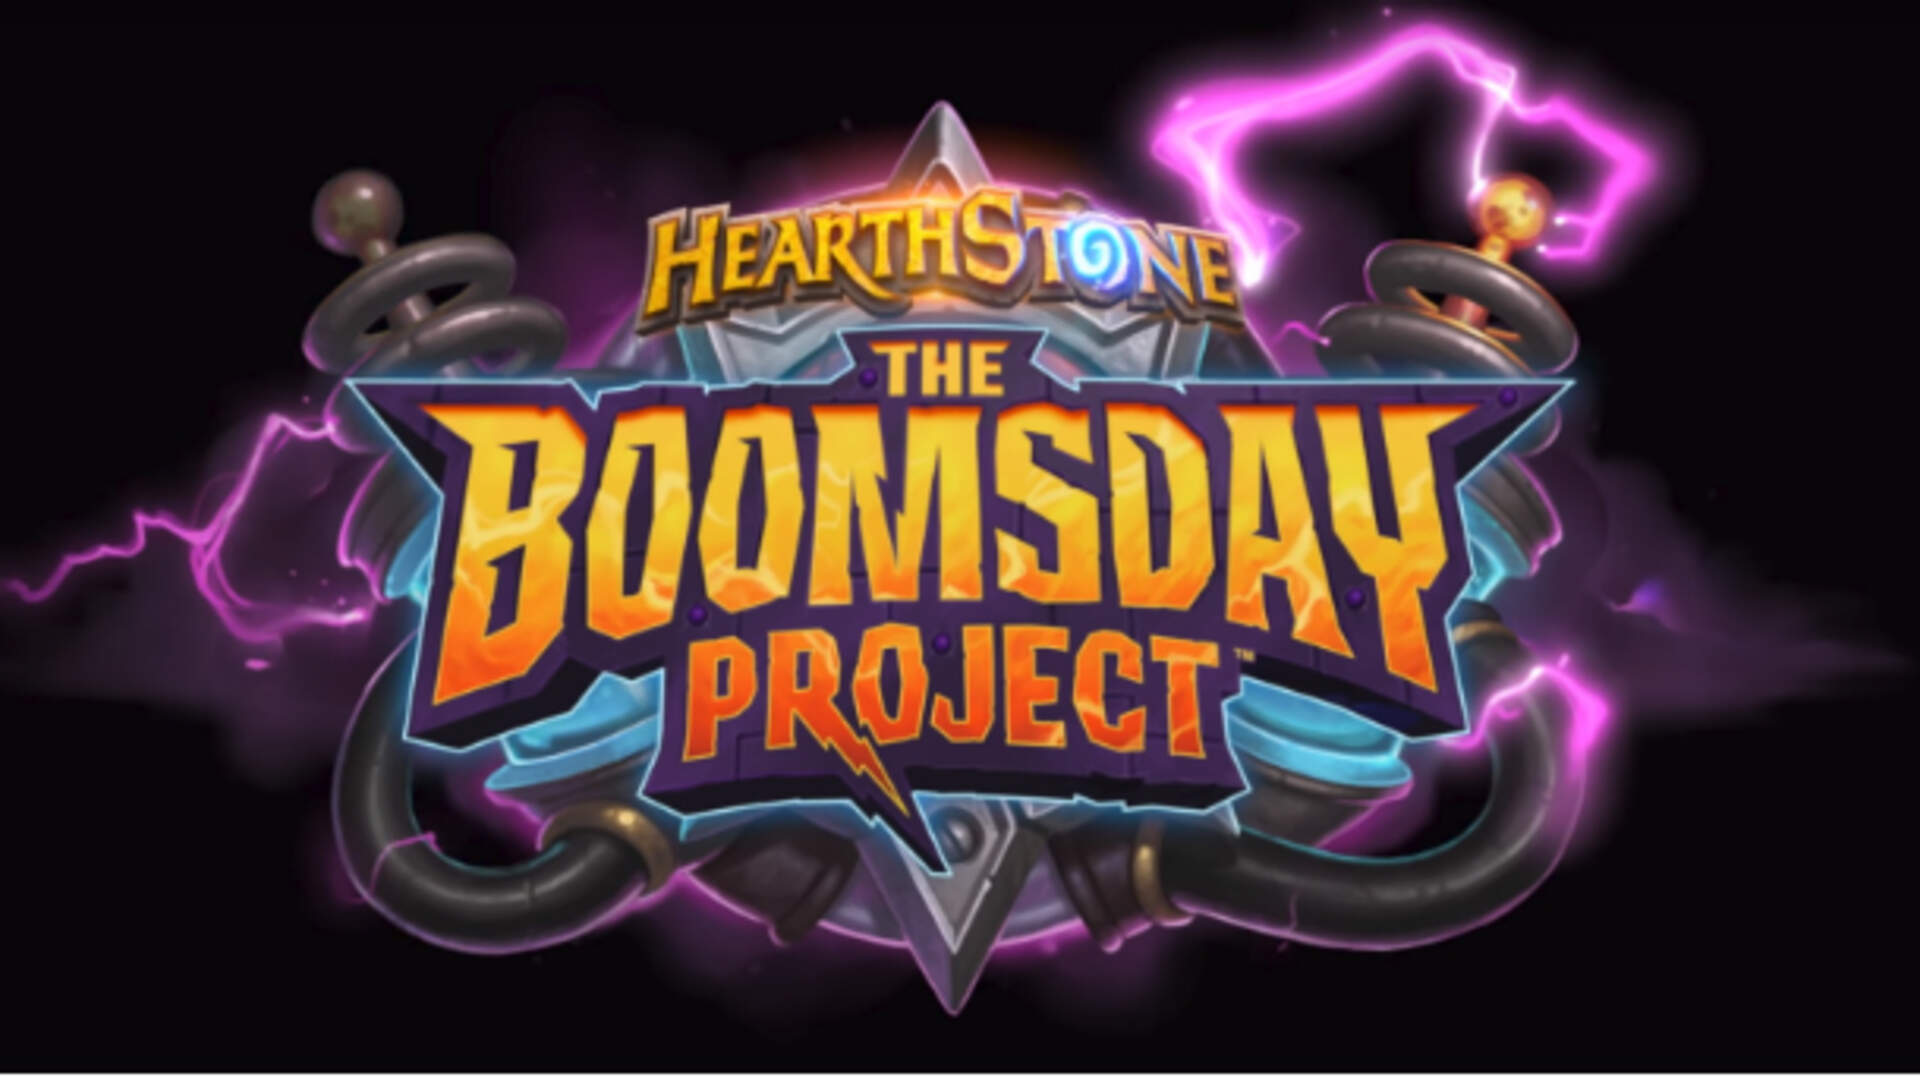 Hearthstone The Boomsday Release Date, Project Cards, Legendary Spells, Magnetic, Omega, Projects, Deck Guides